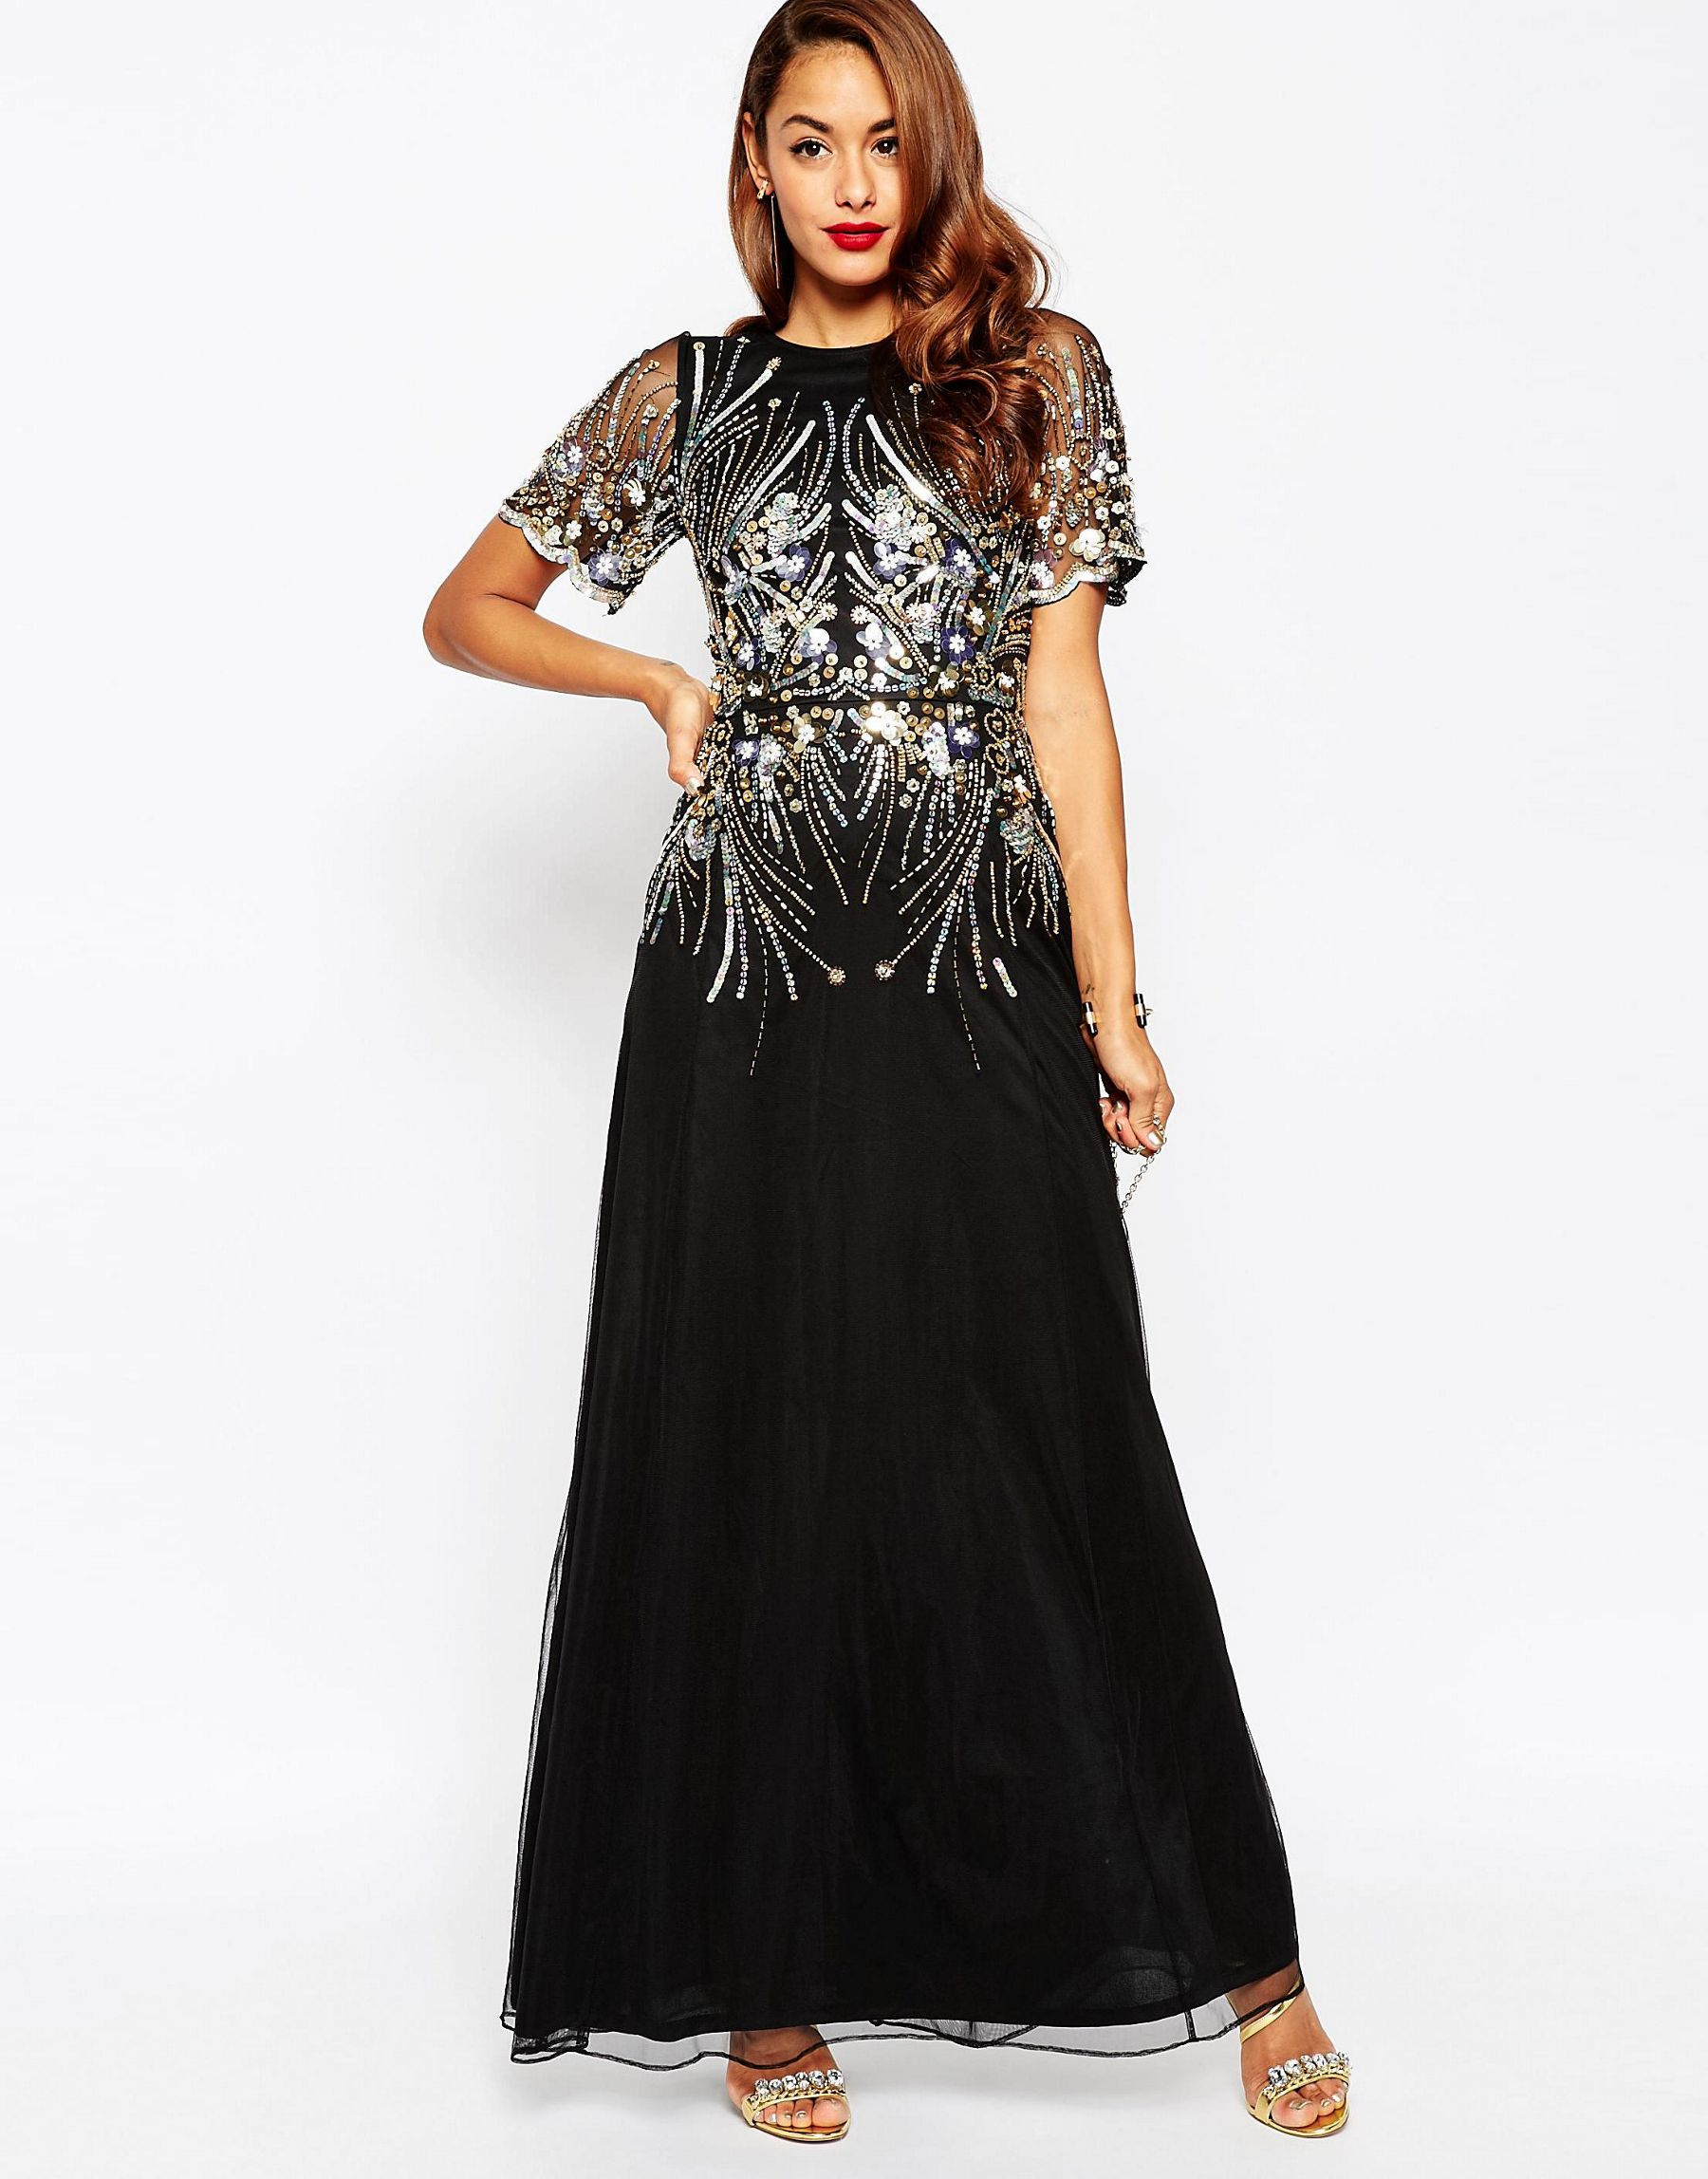 Asos Red Carpet Gold And Black Sparkle Mesh Maxi Dress in ...